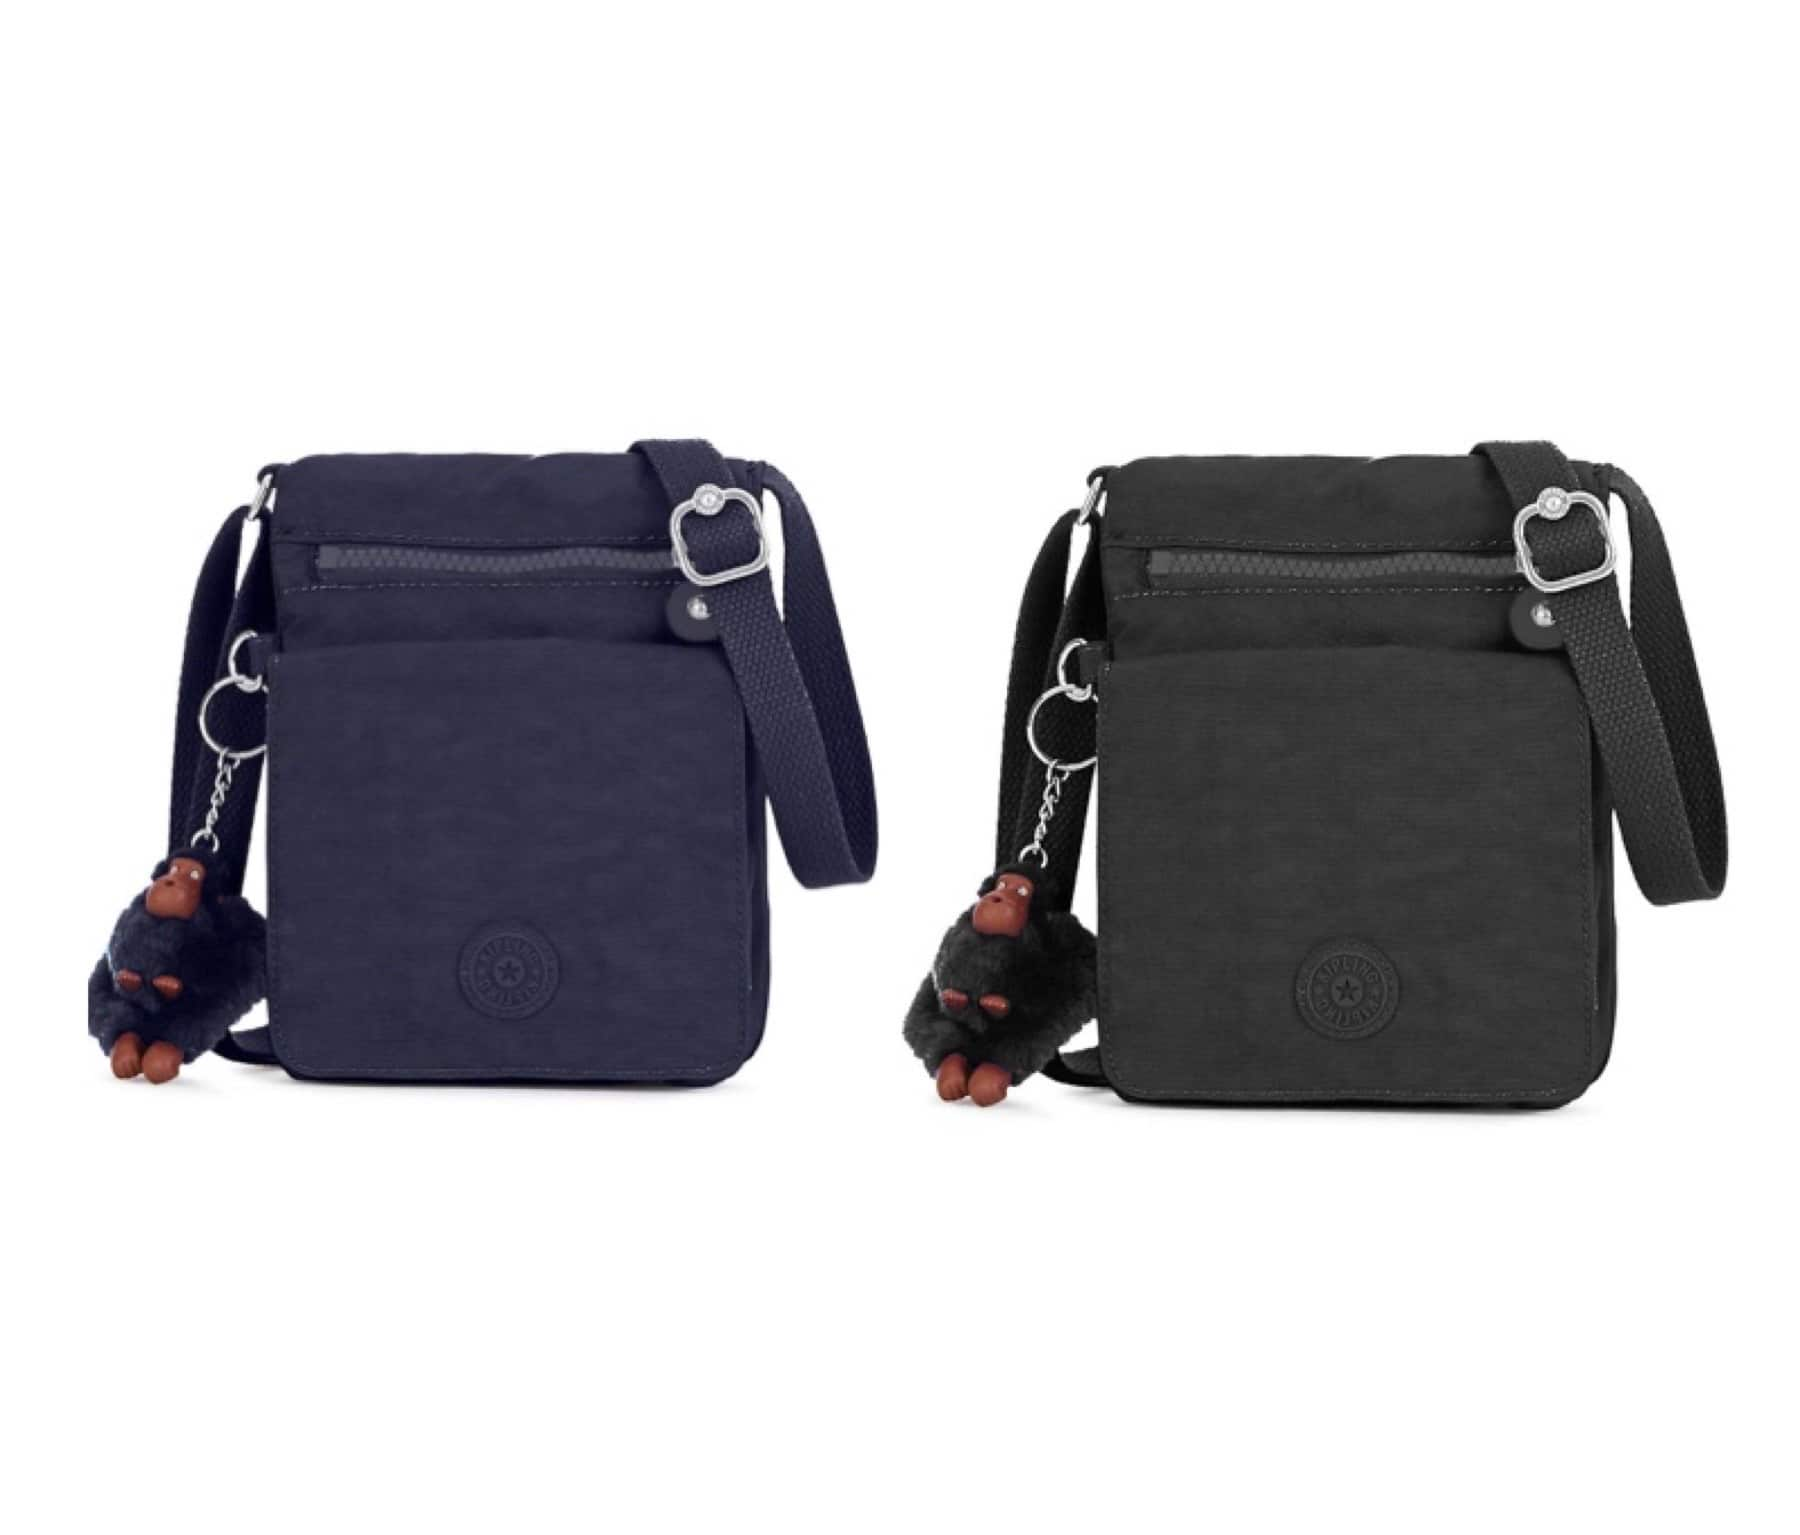 Kipling Stacking Discounts: Eldorado Crossbody Bag 2 for $38.25 ($19.12 each) or (2 for $34.42 for Students) & More + Free Shipping